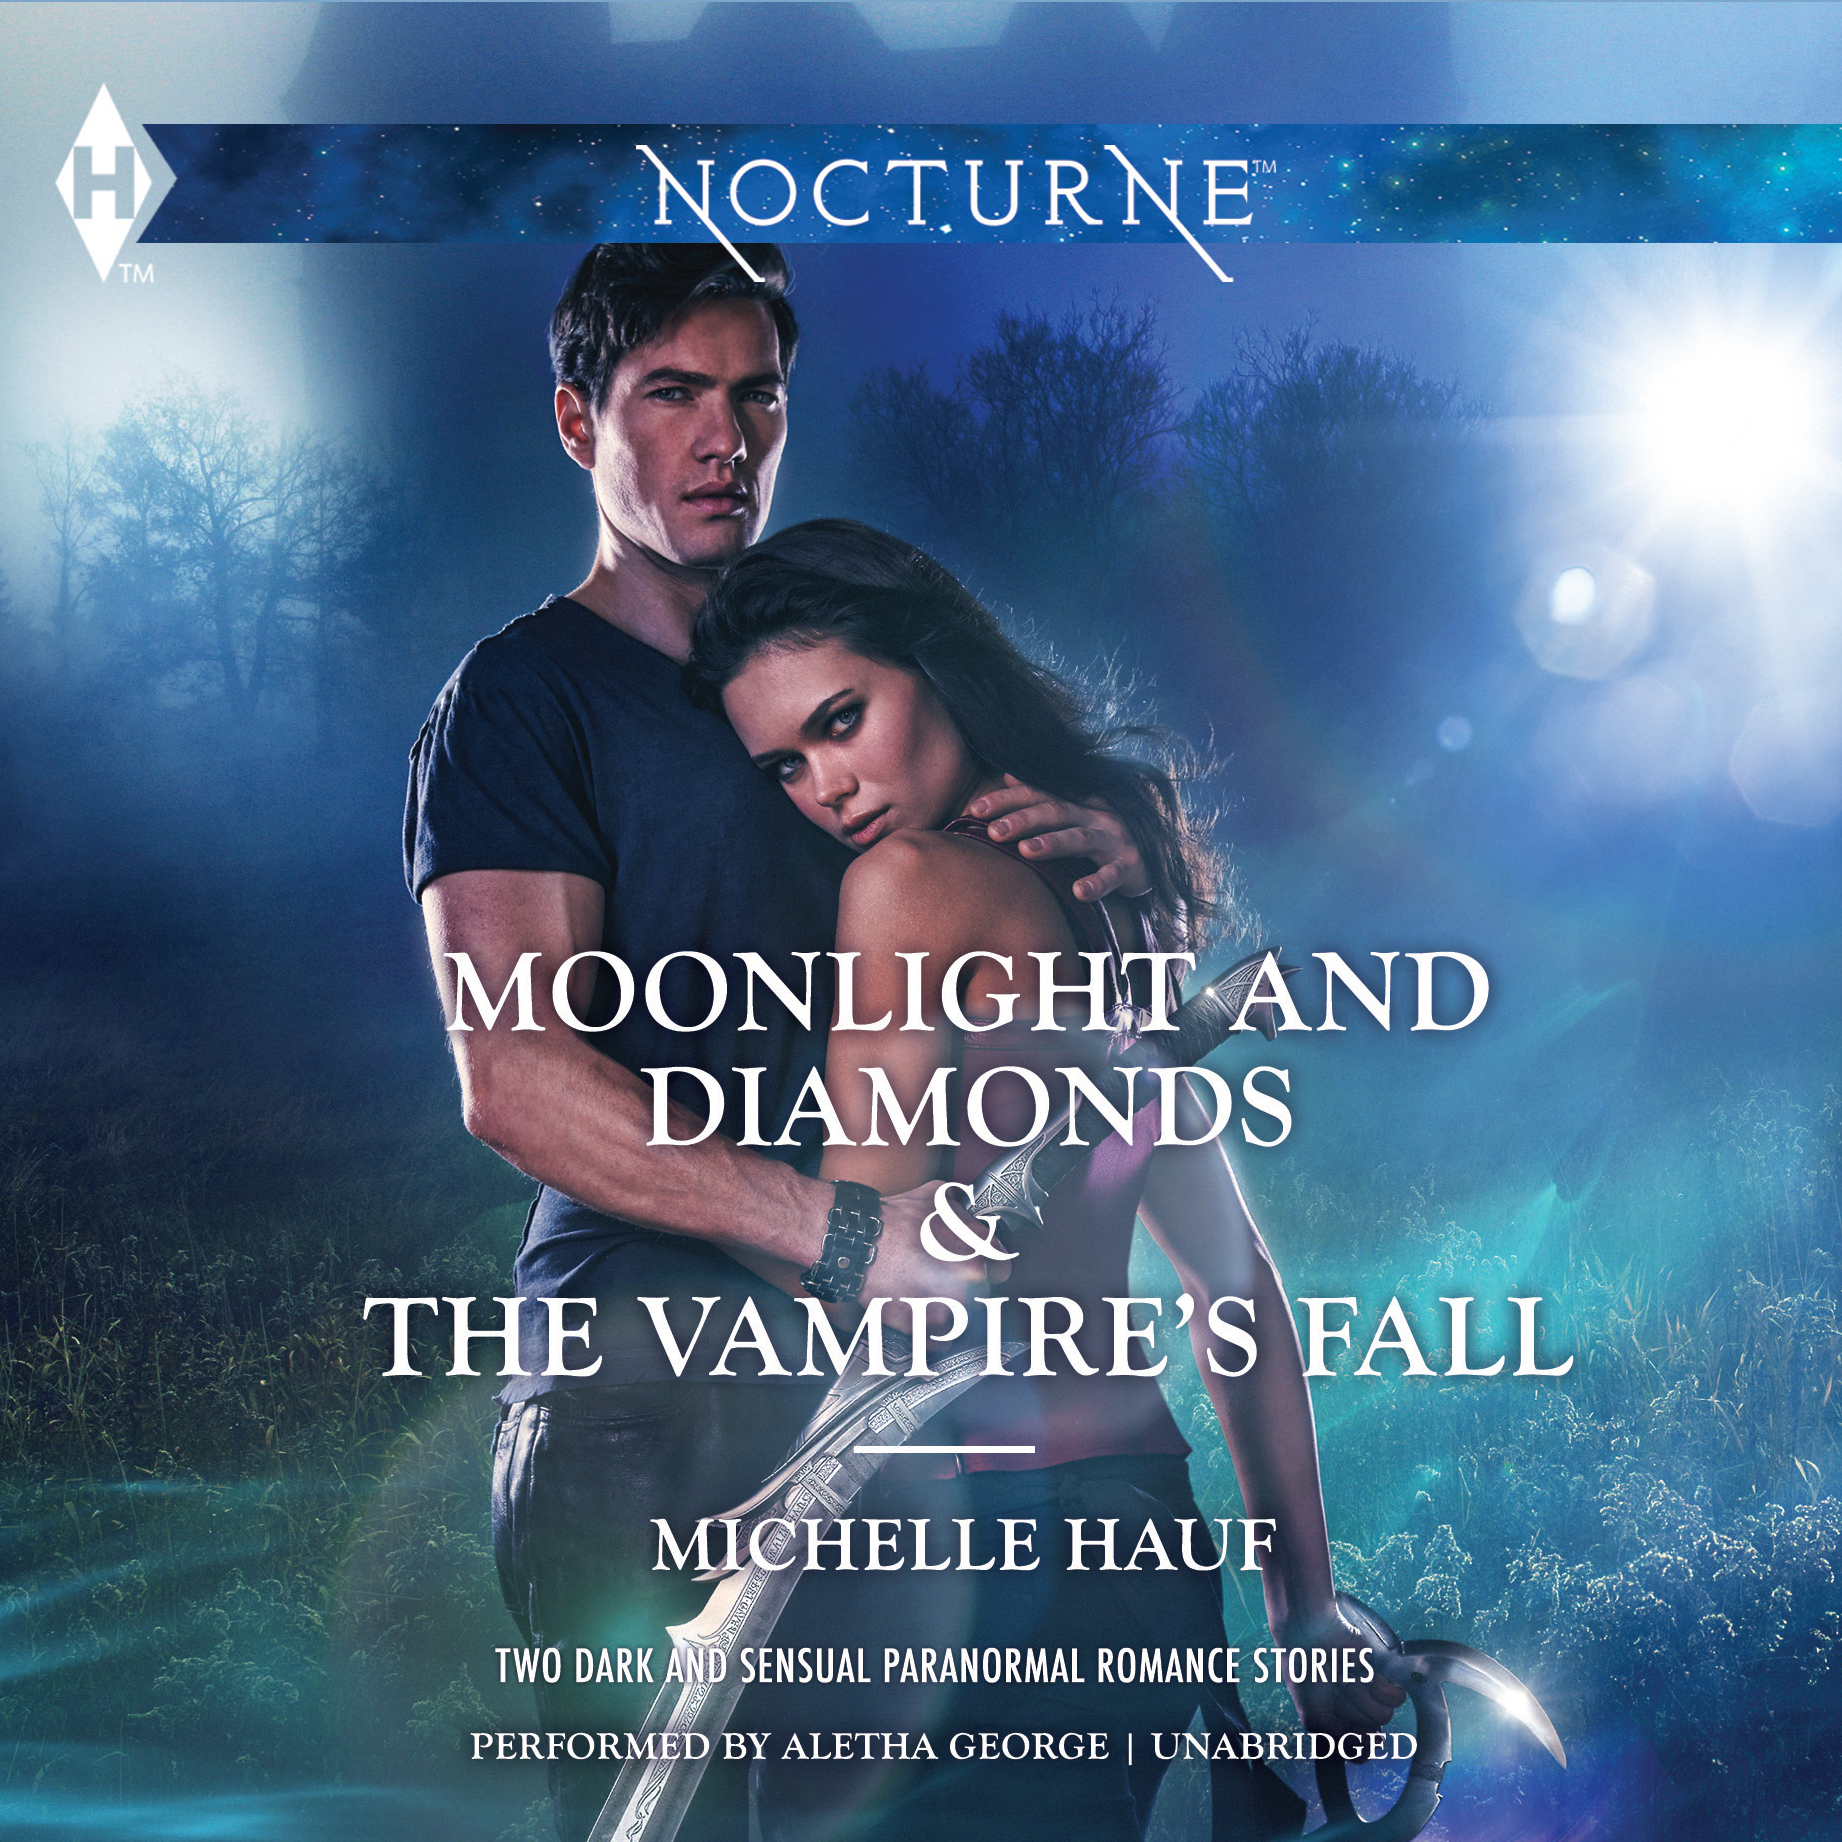 Printable Moonlight and Diamonds & The Vampire's Fall Audiobook Cover Art